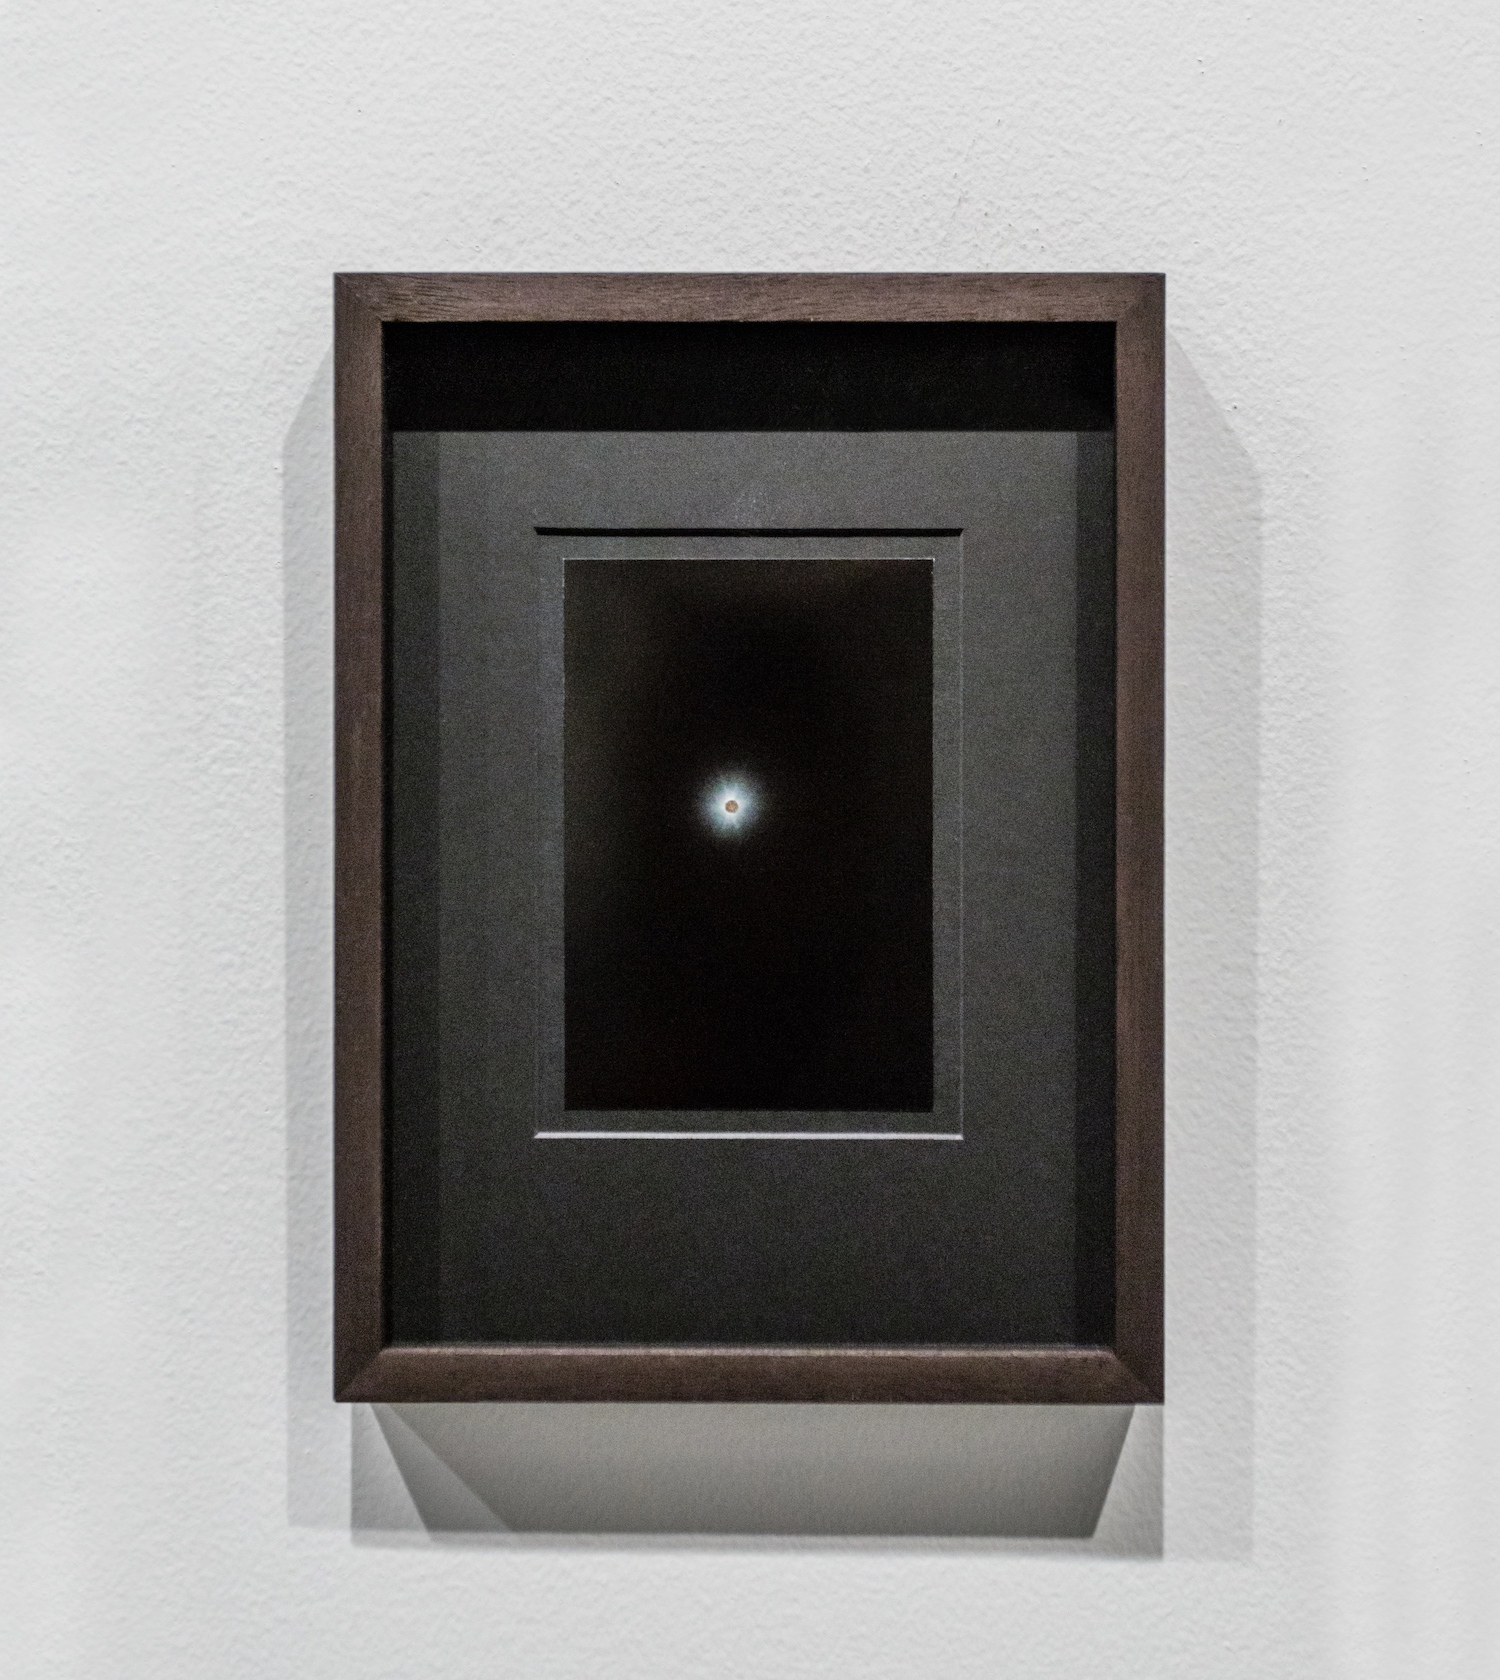 Stéphanie Saadé  Moongold (4) 2016 Photograph, Moon Gold leaf 10 x 15 cm (each) (unframed) On photographs taken by the artist with her mobile phone, the moon, appearing very small, is gilded with Moon Gold leaf.